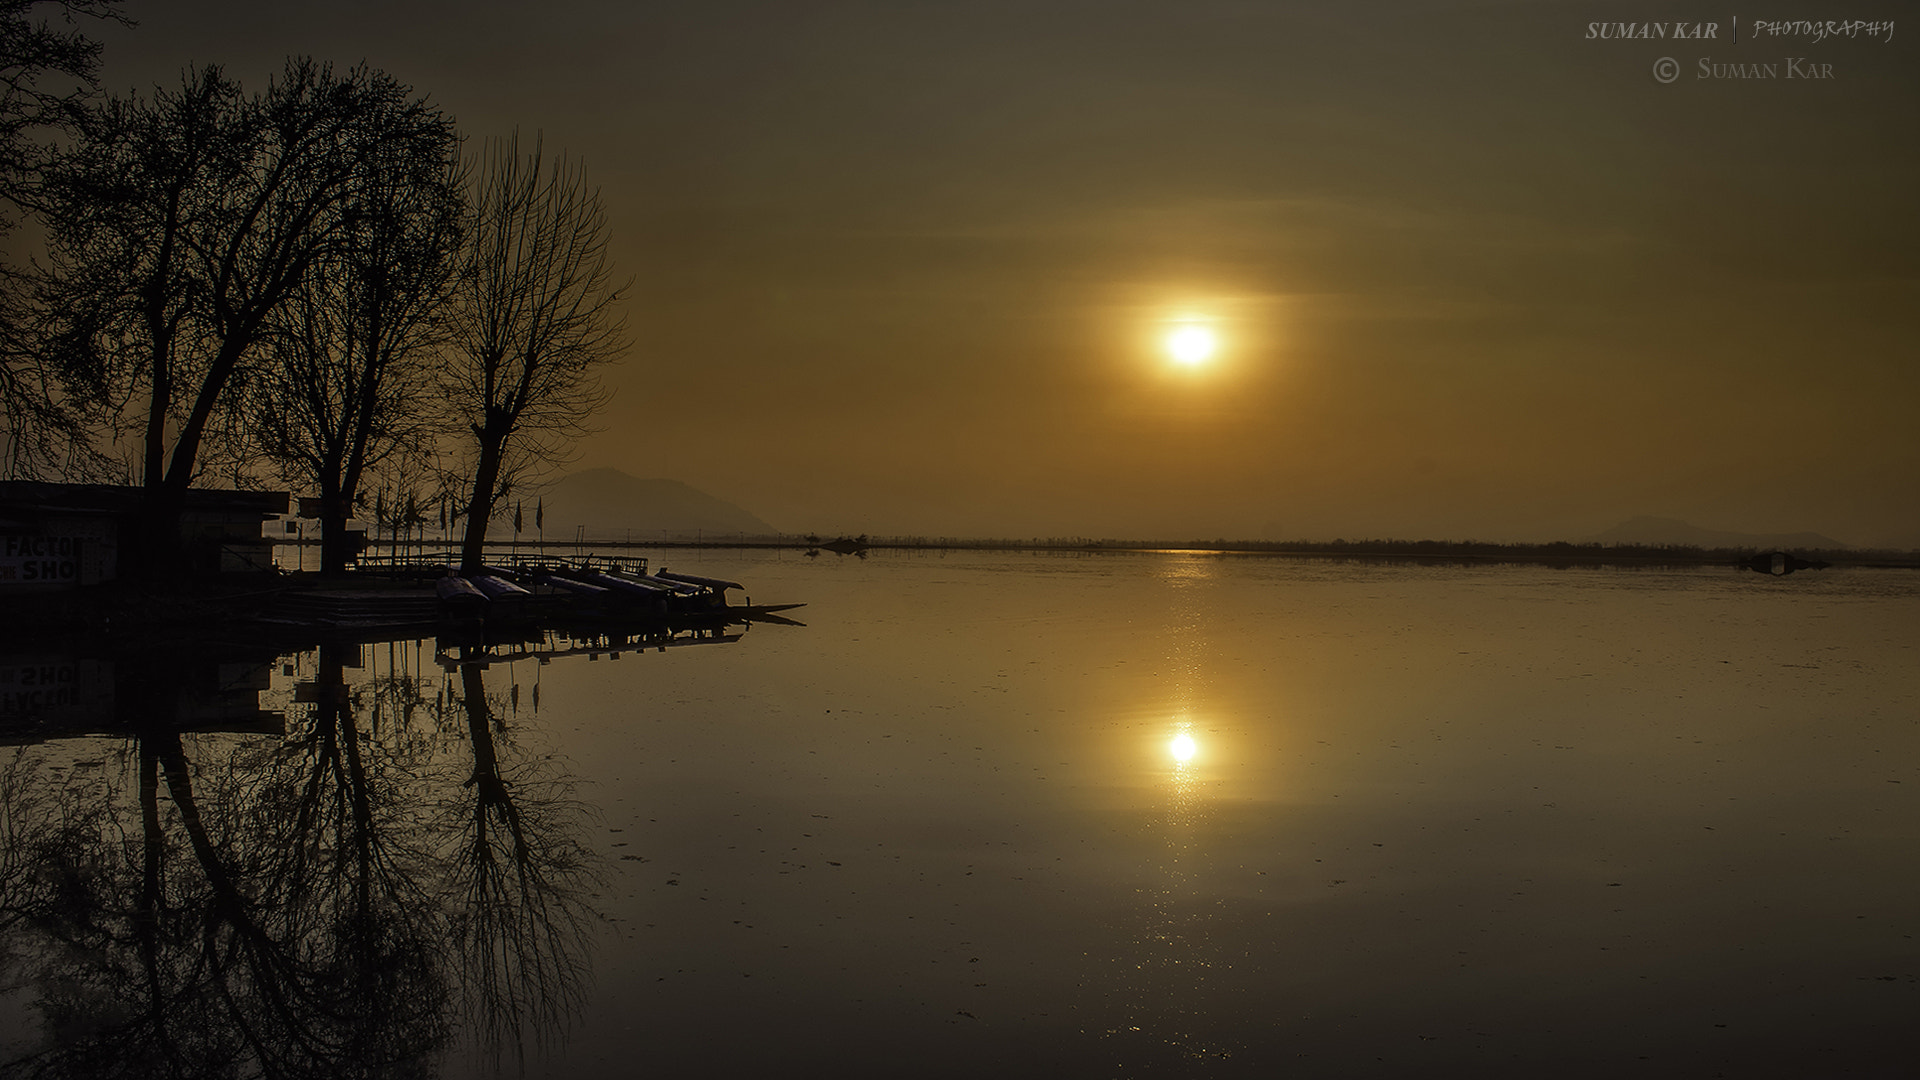 Photograph Tranquillity of sunset by Suman Kar on 500px